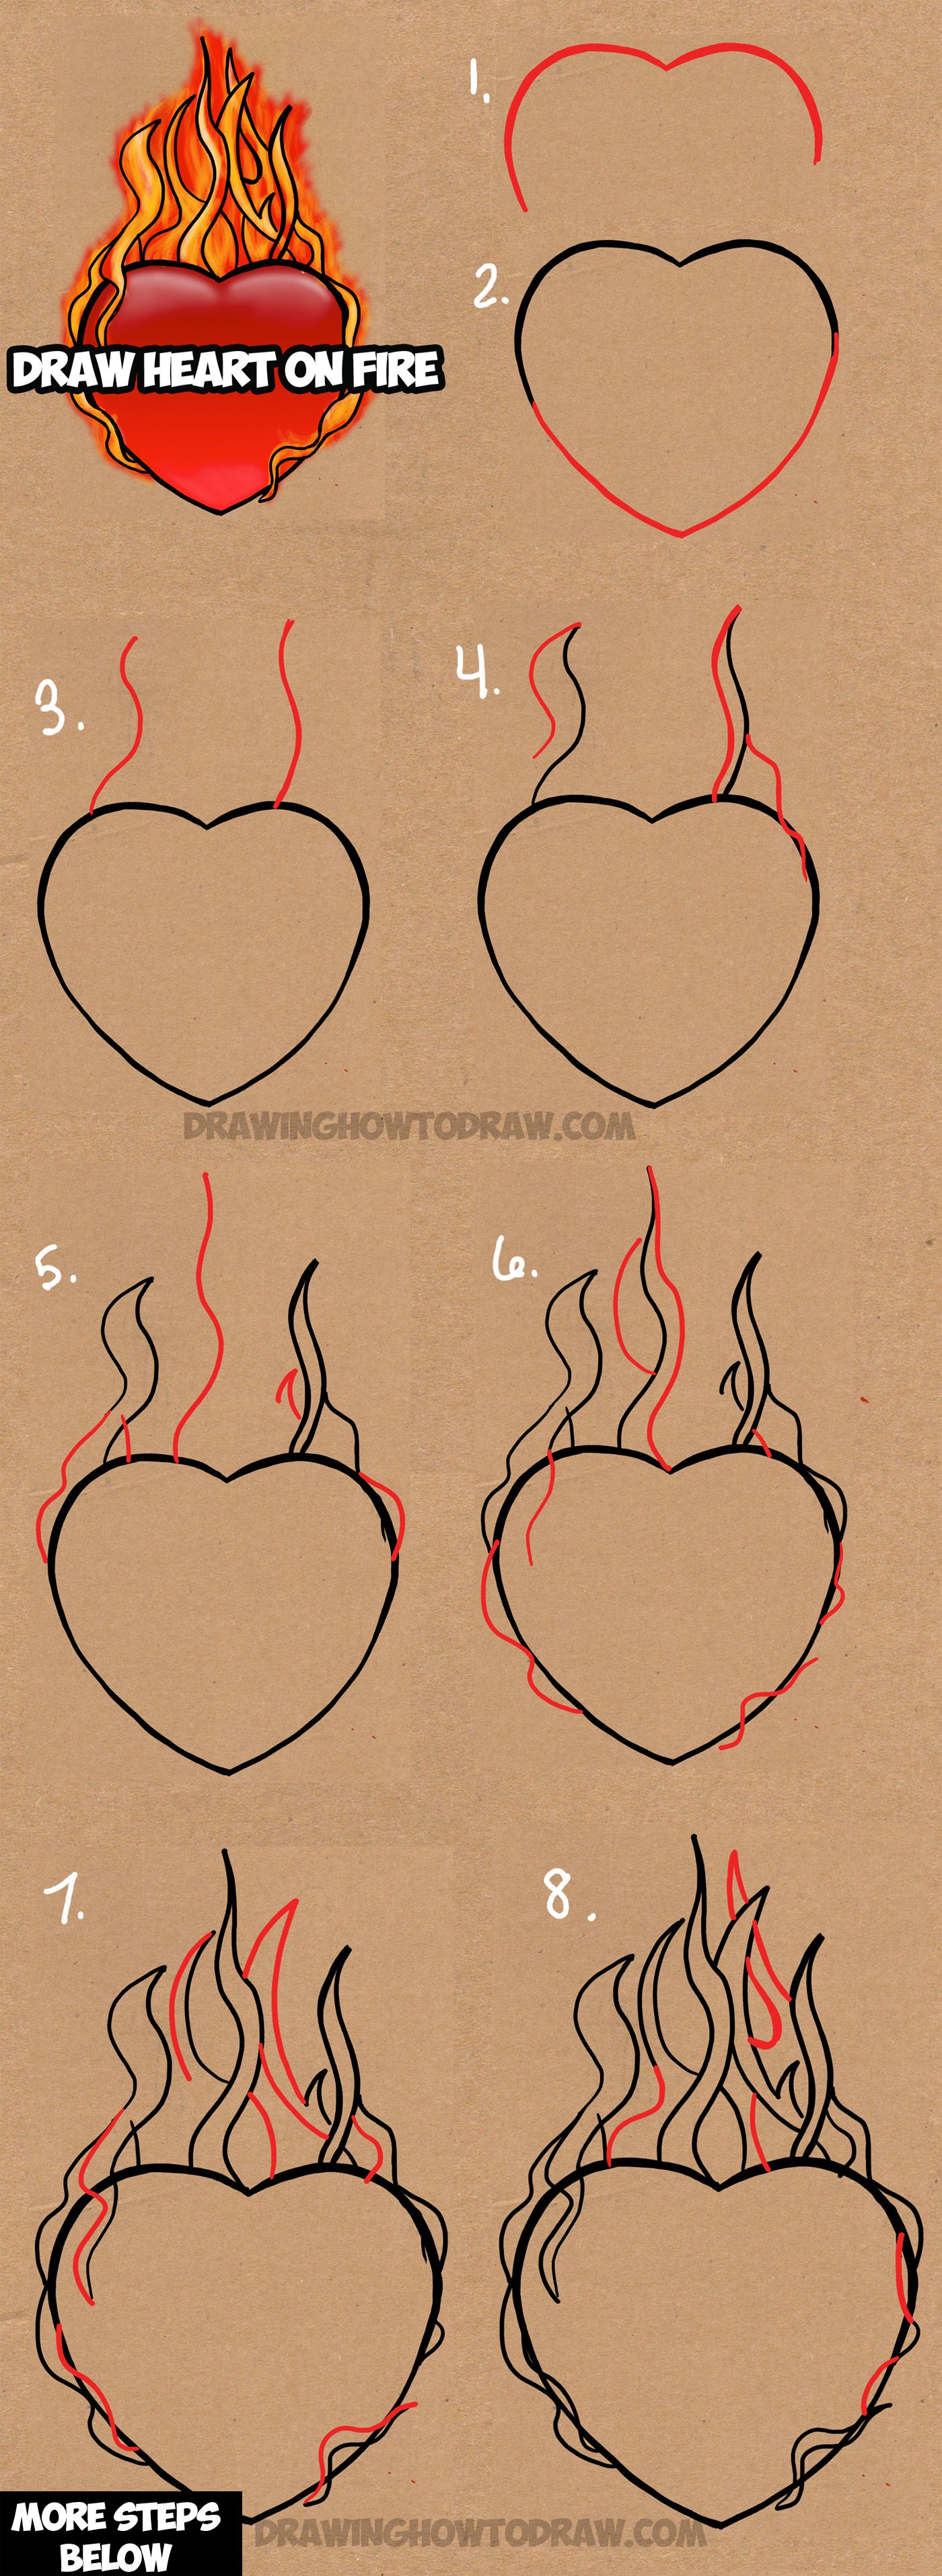 Learn How To Draw A Heart On Fire With Flames With Easy Steps Drawing Lesson